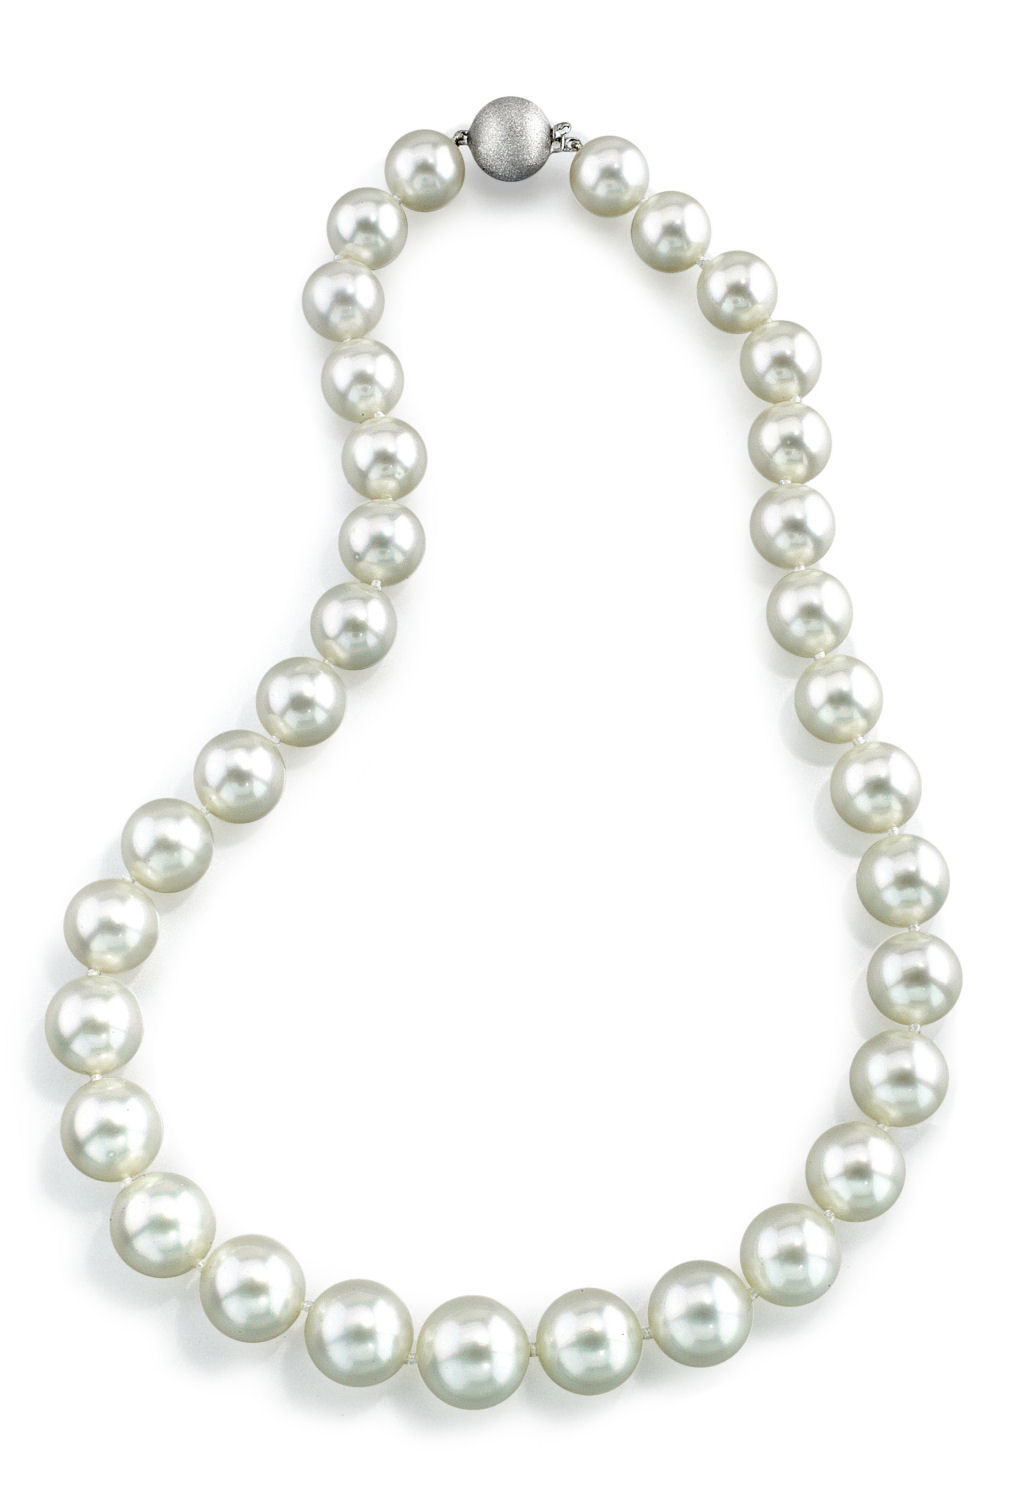 """14K Gold 11-13mm White South Sea Cultured Pearl Necklace AAA Quality, 20"""" Matinee Length by The Pearl Source"""